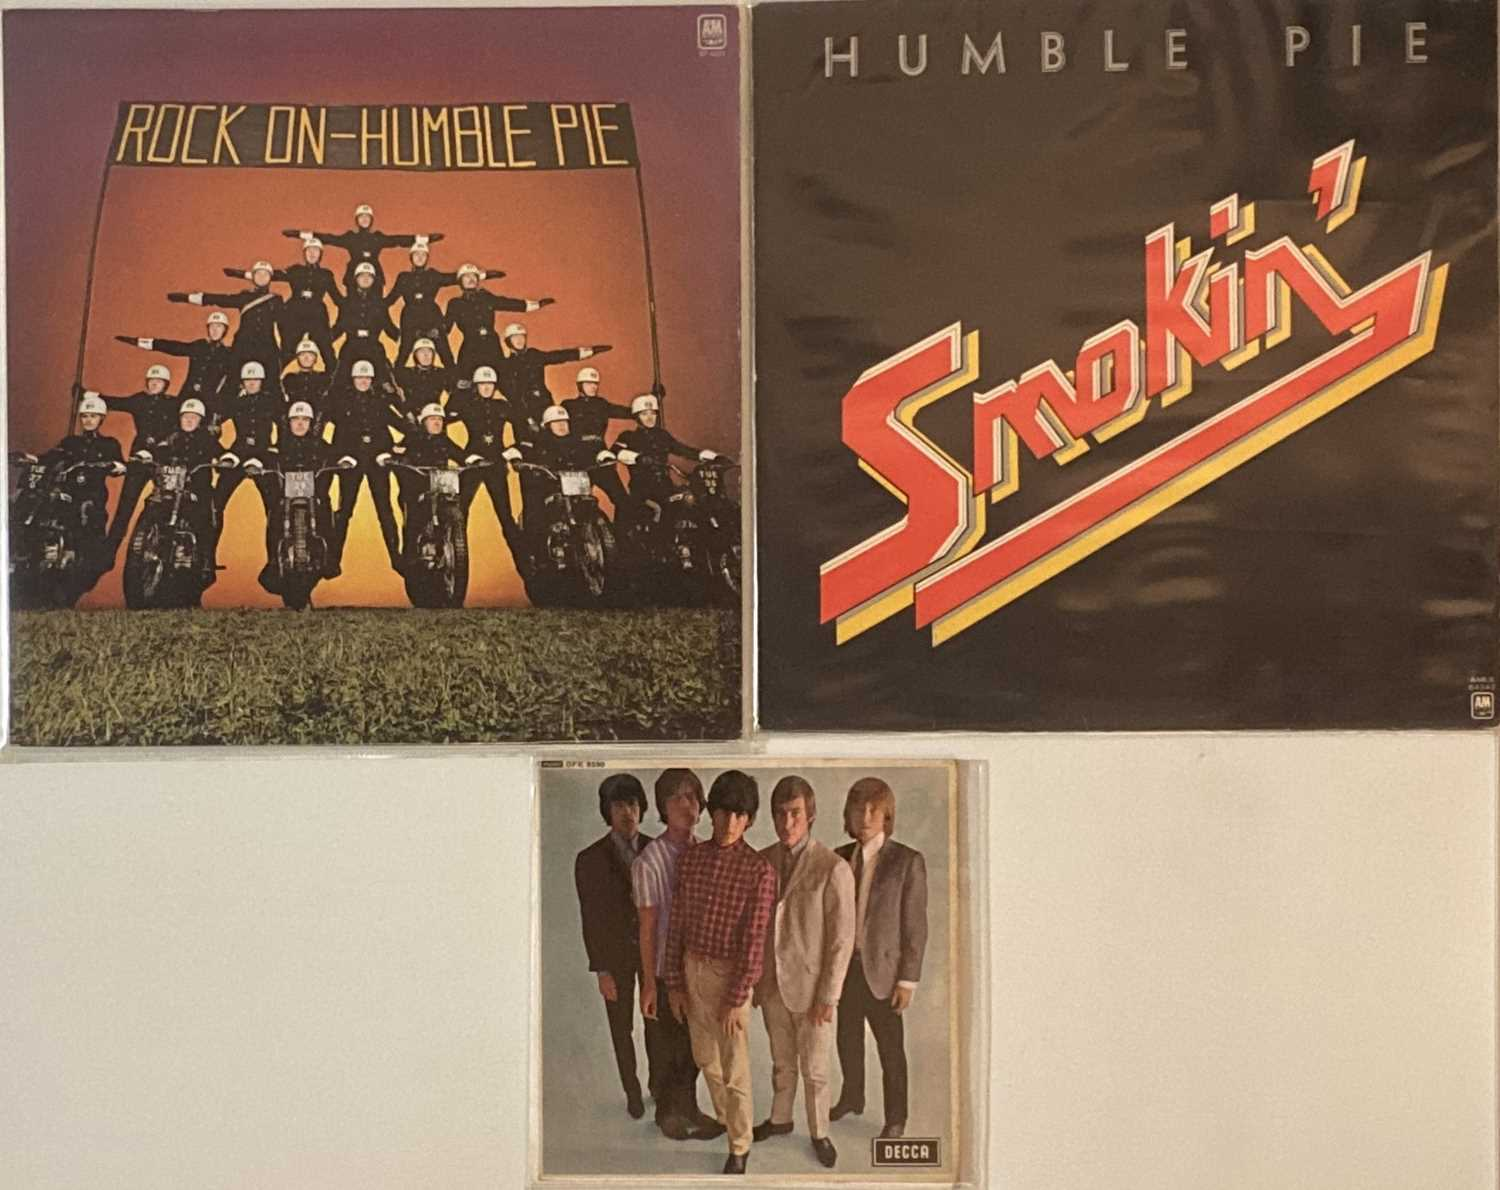 THE ROLLING STONES/ HUMBLE PIE - LPs - Image 2 of 2